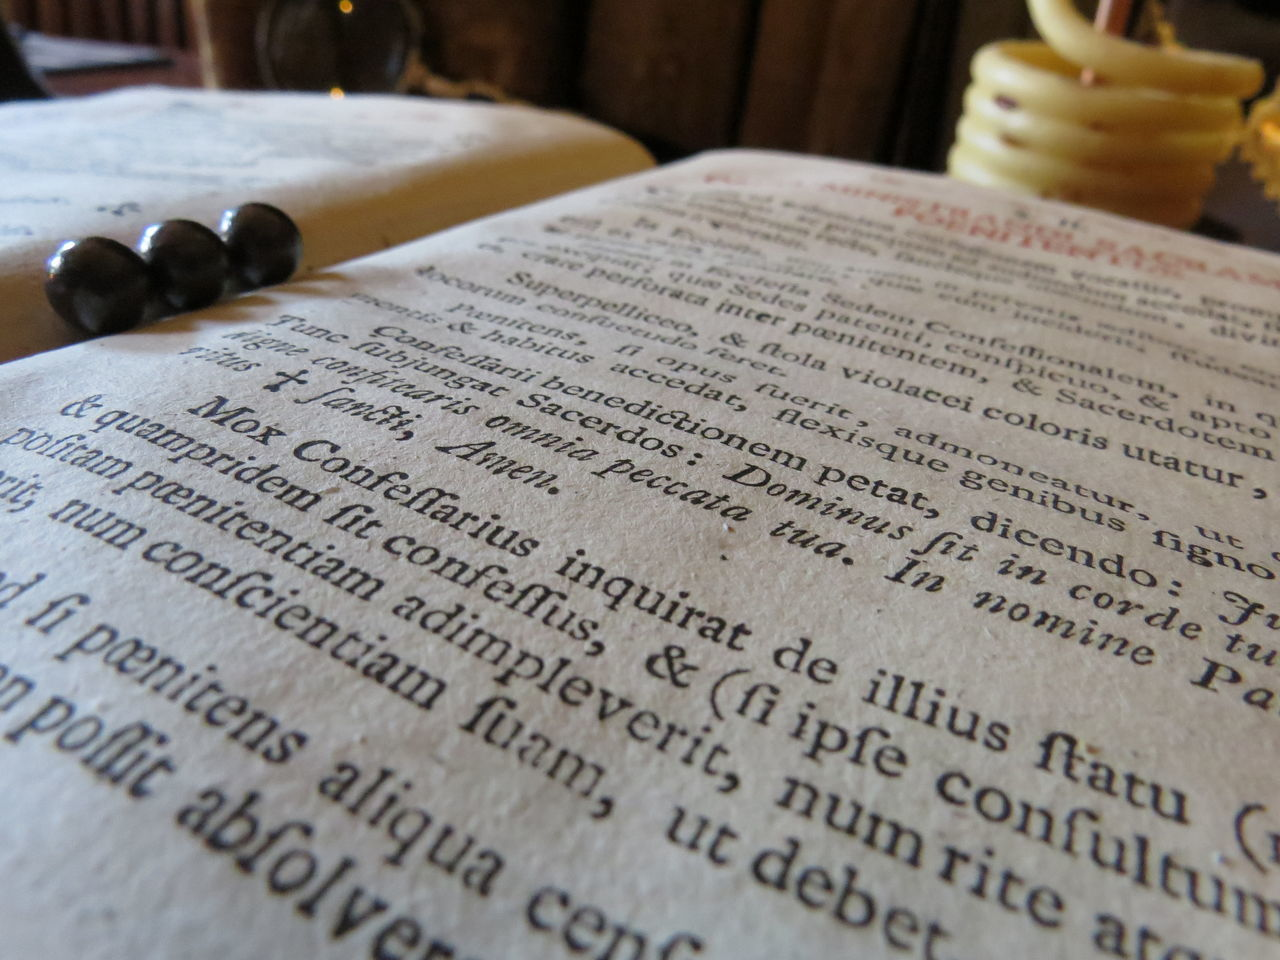 text, book, paper, indoors, religion, communication, no people, spirituality, close-up, literature, musical note, day